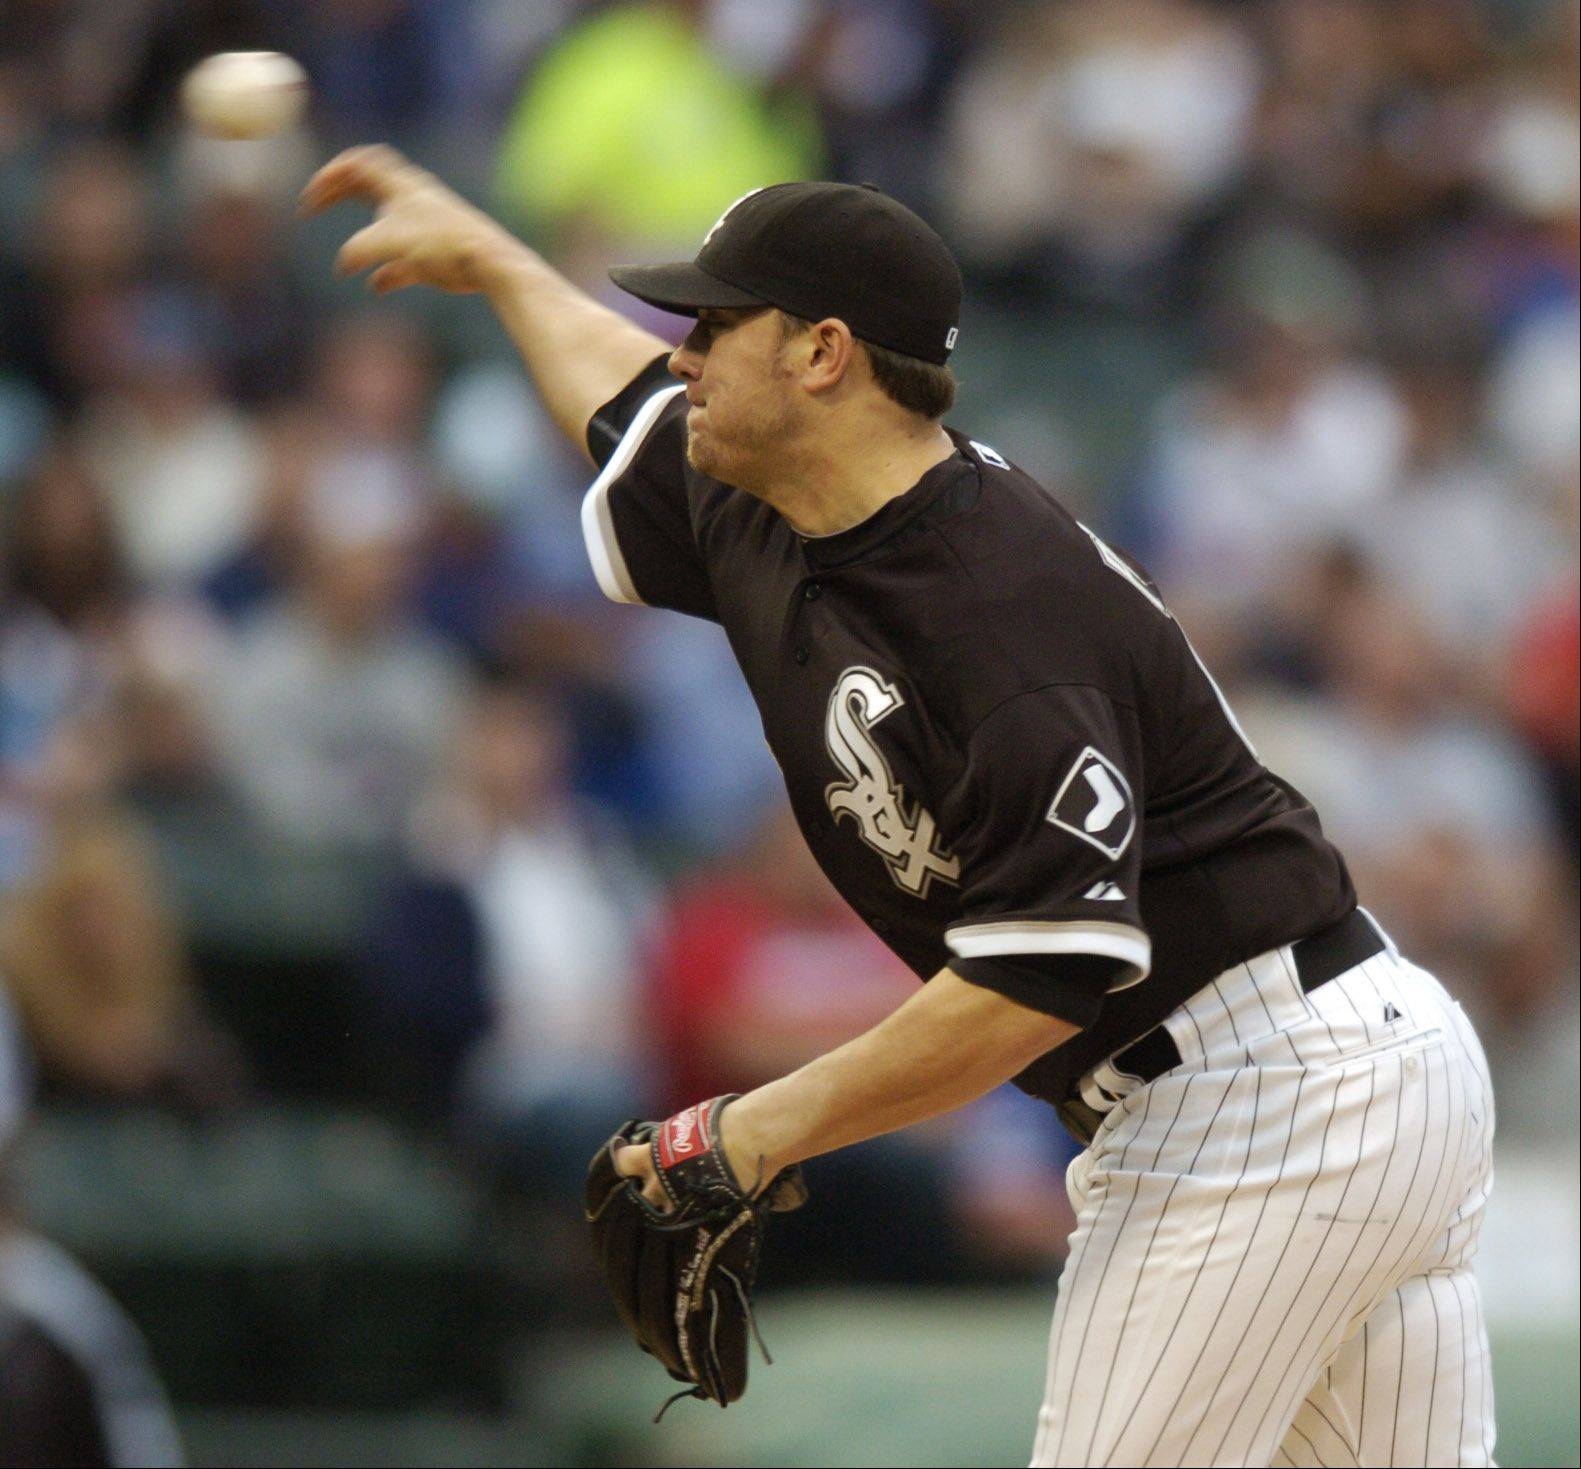 Sox starting pitcher Jake Peavy delivers against the Cubs during Wednesday's game at U.S. Cellular Field.